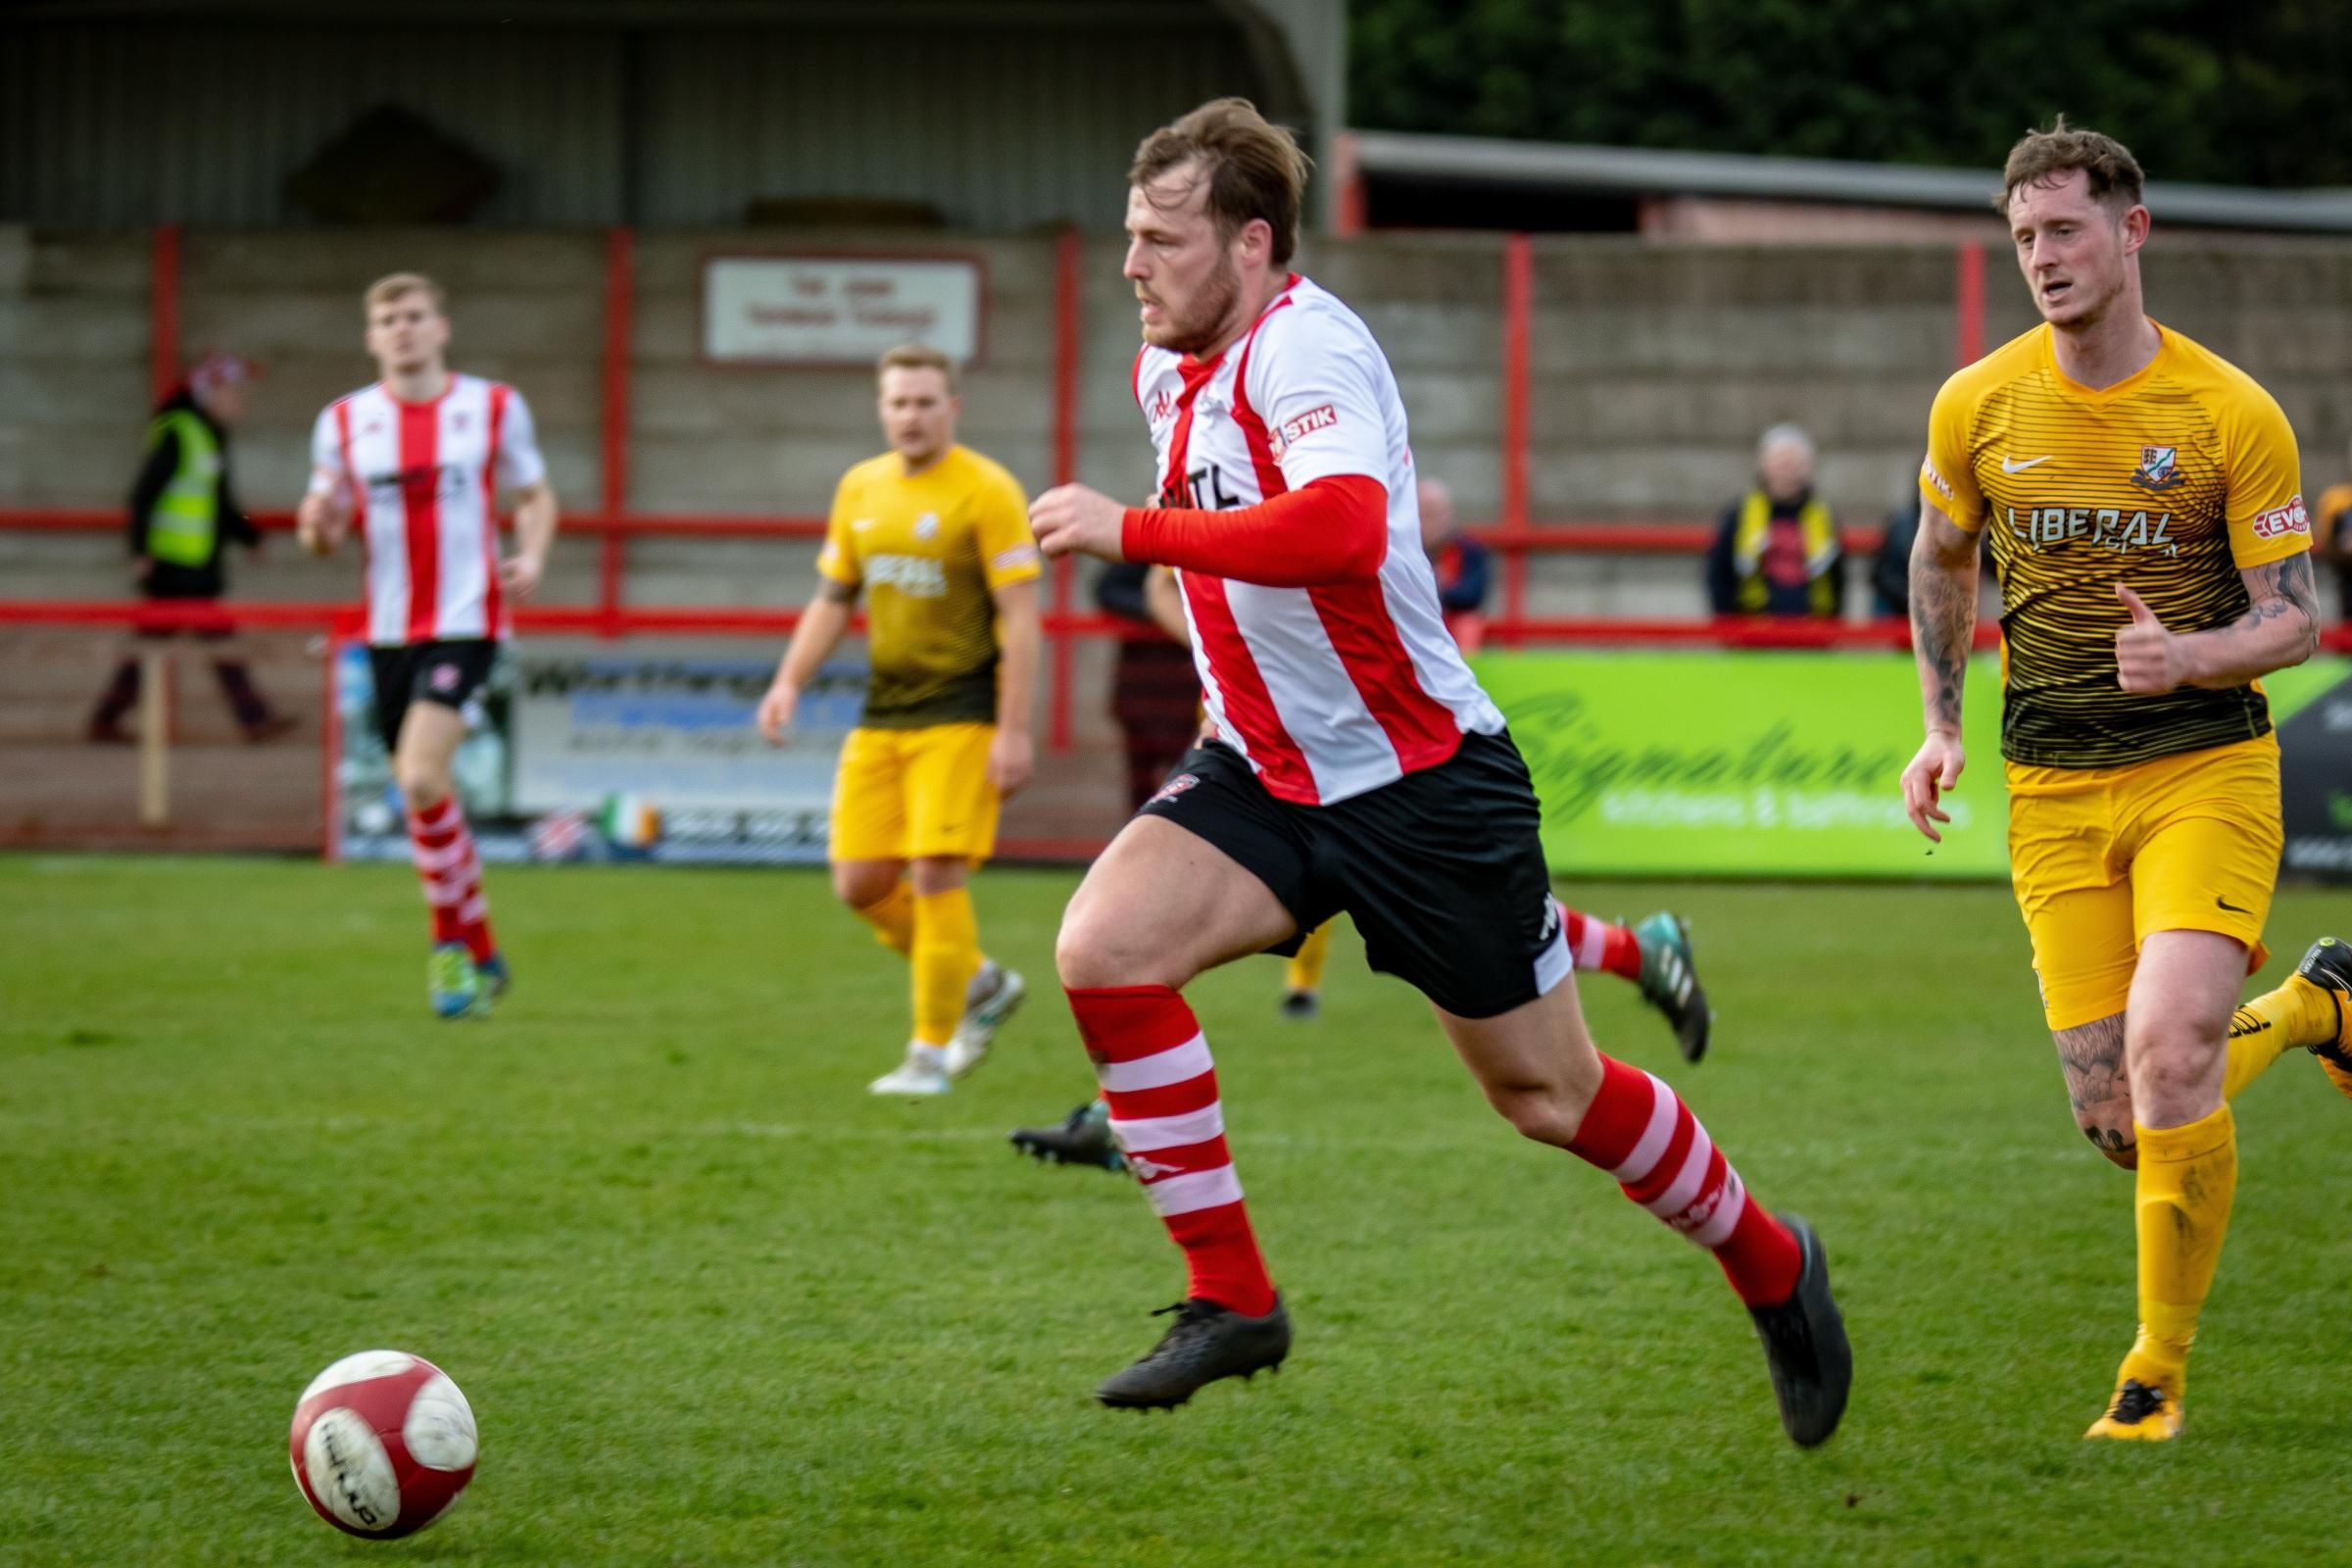 A spectacular volley by front man Will Jones against Basford United at Wincham Park in March was voted by supporters as Witton Albion's goal of the season. Picture: Karl Brooks Photography